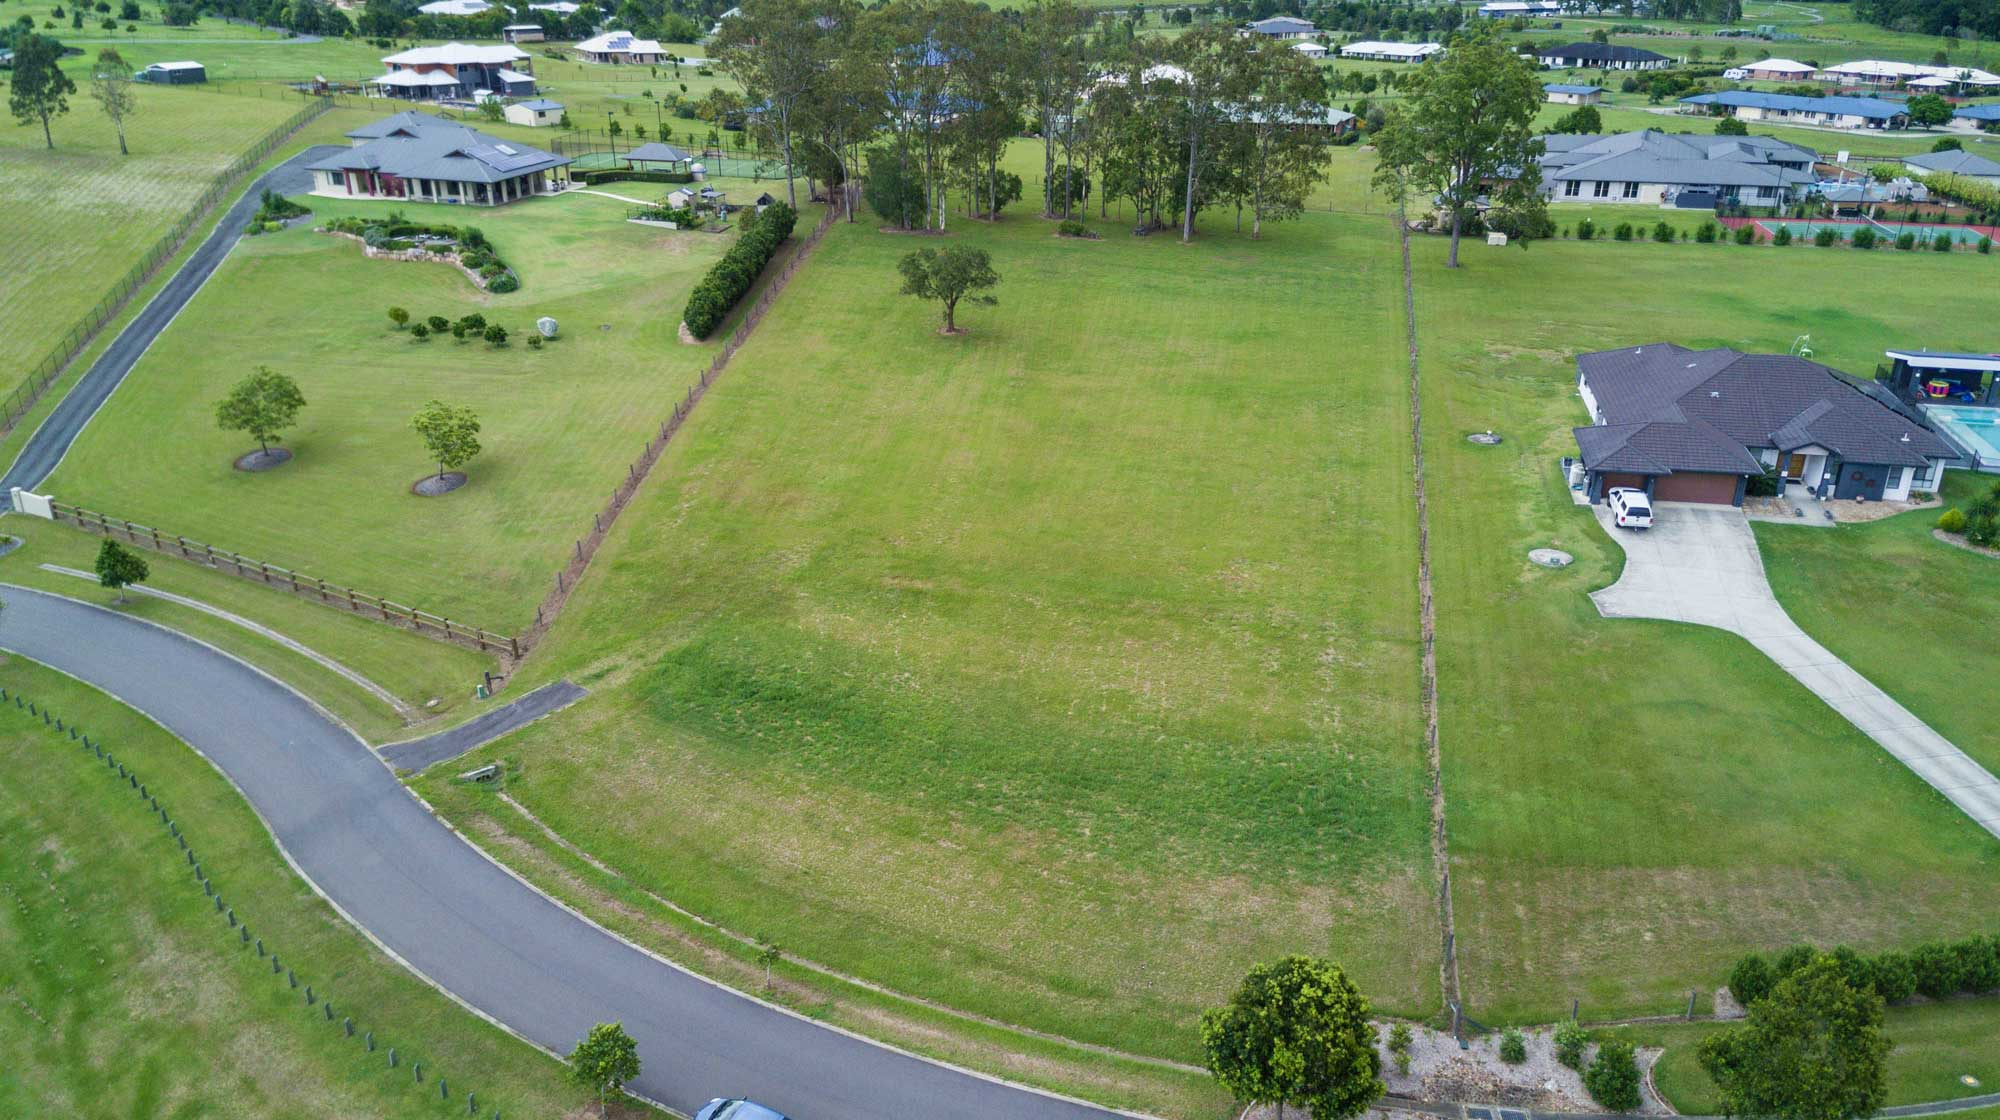 Aerial drone photography Brisbane real estate. DroneAce captures image of land for sale in Samford, Brisbane